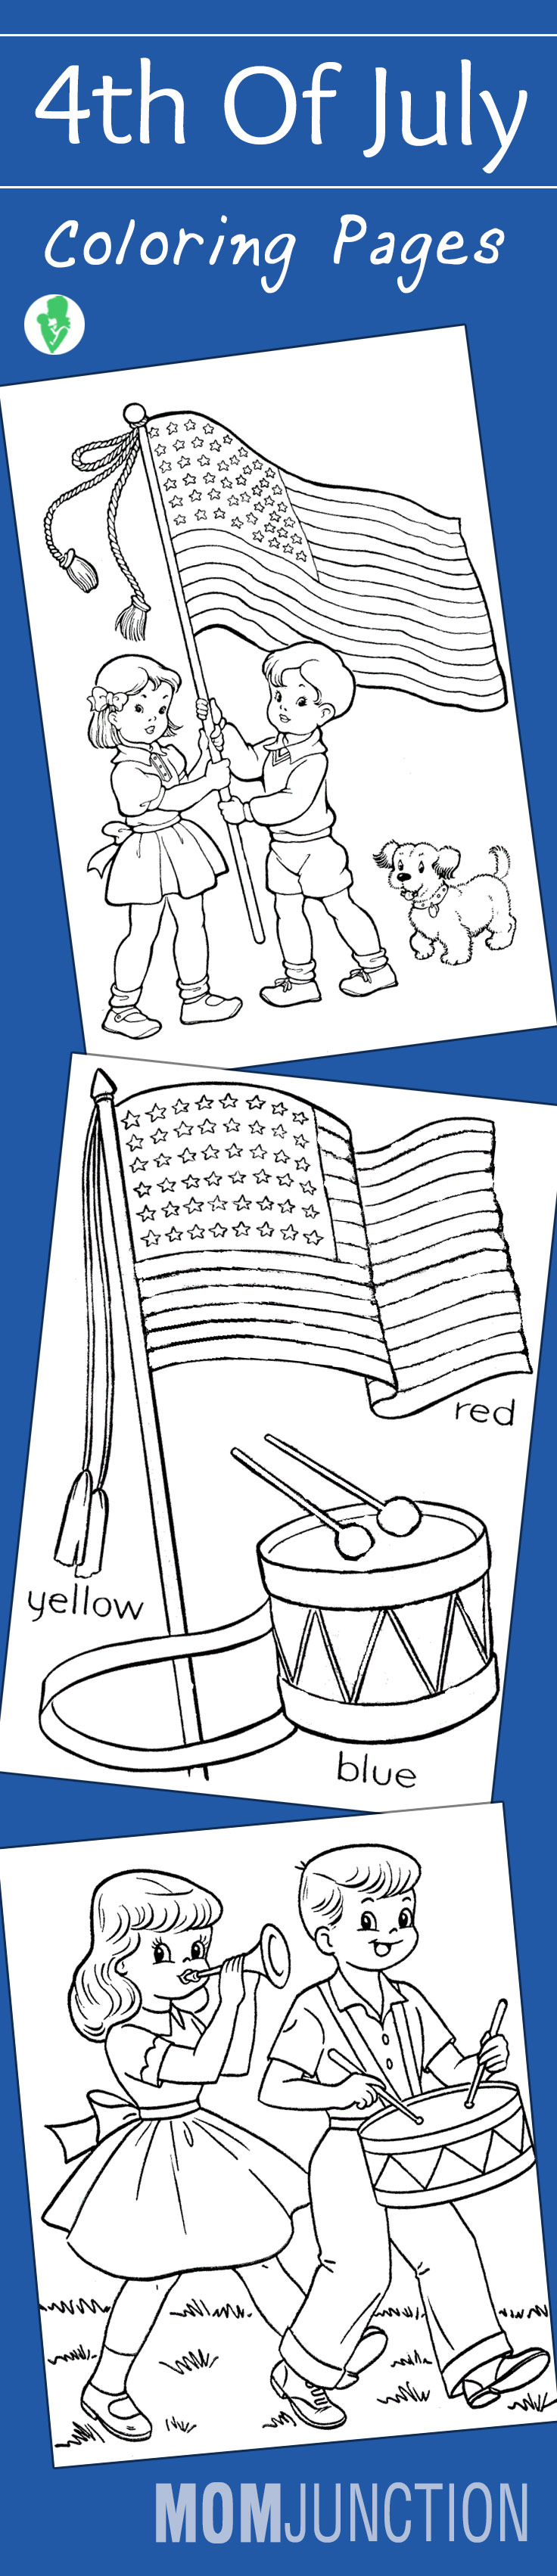 4th of july free printable coloring pages - 4th Of July Free Printable Coloring Pages 34